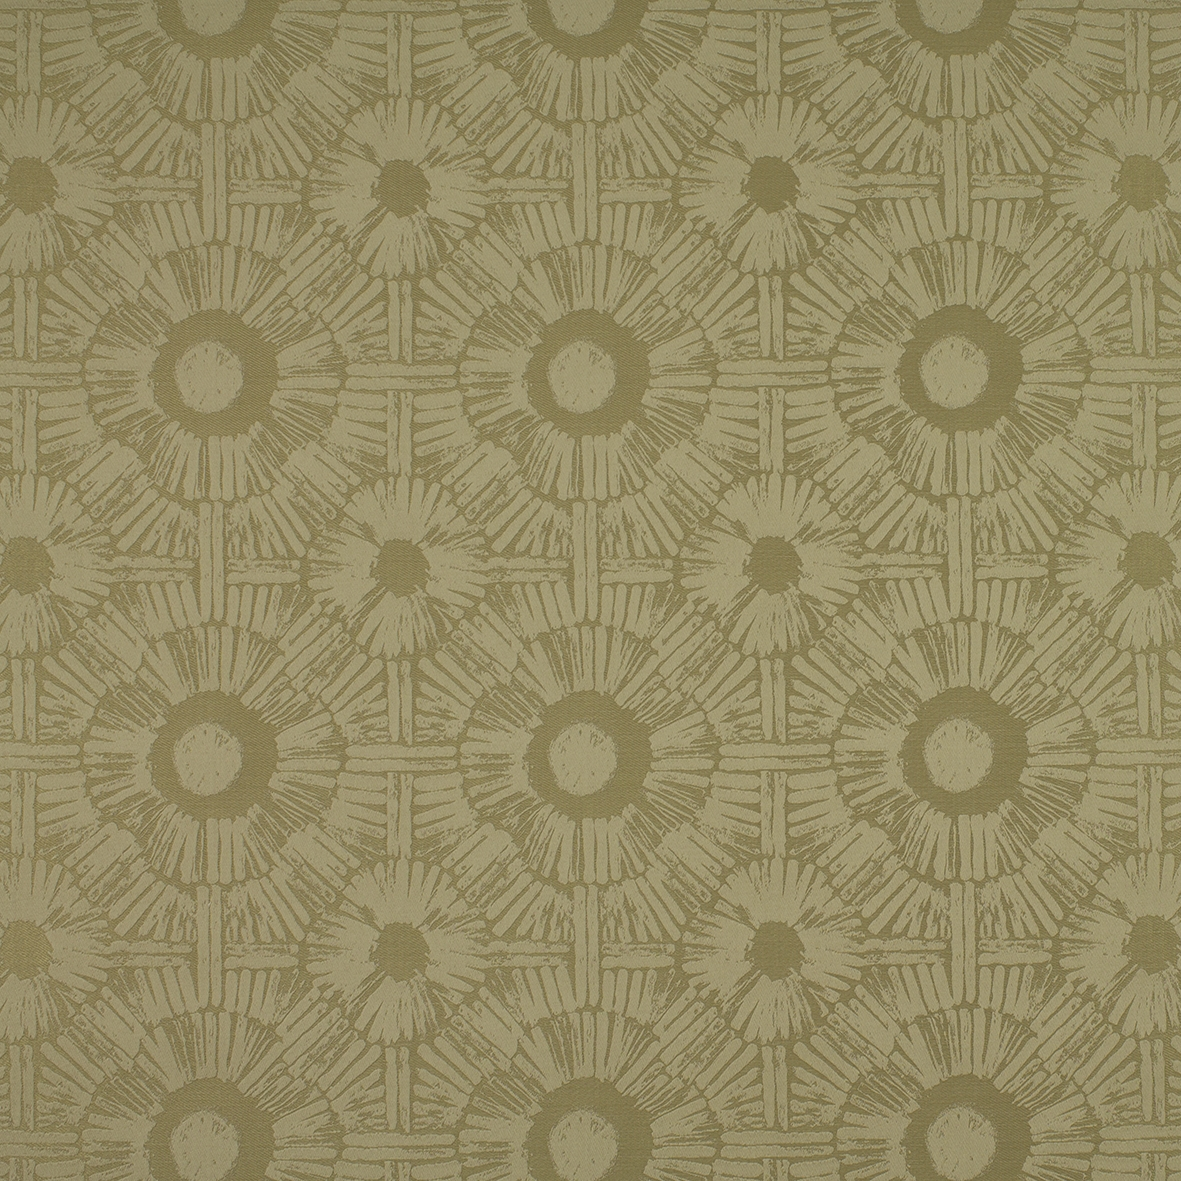 Hyalite Gold Roman Blind Patterned Roman Blinds Roman Blinds Within Gold Roman Blinds (Image 9 of 15)